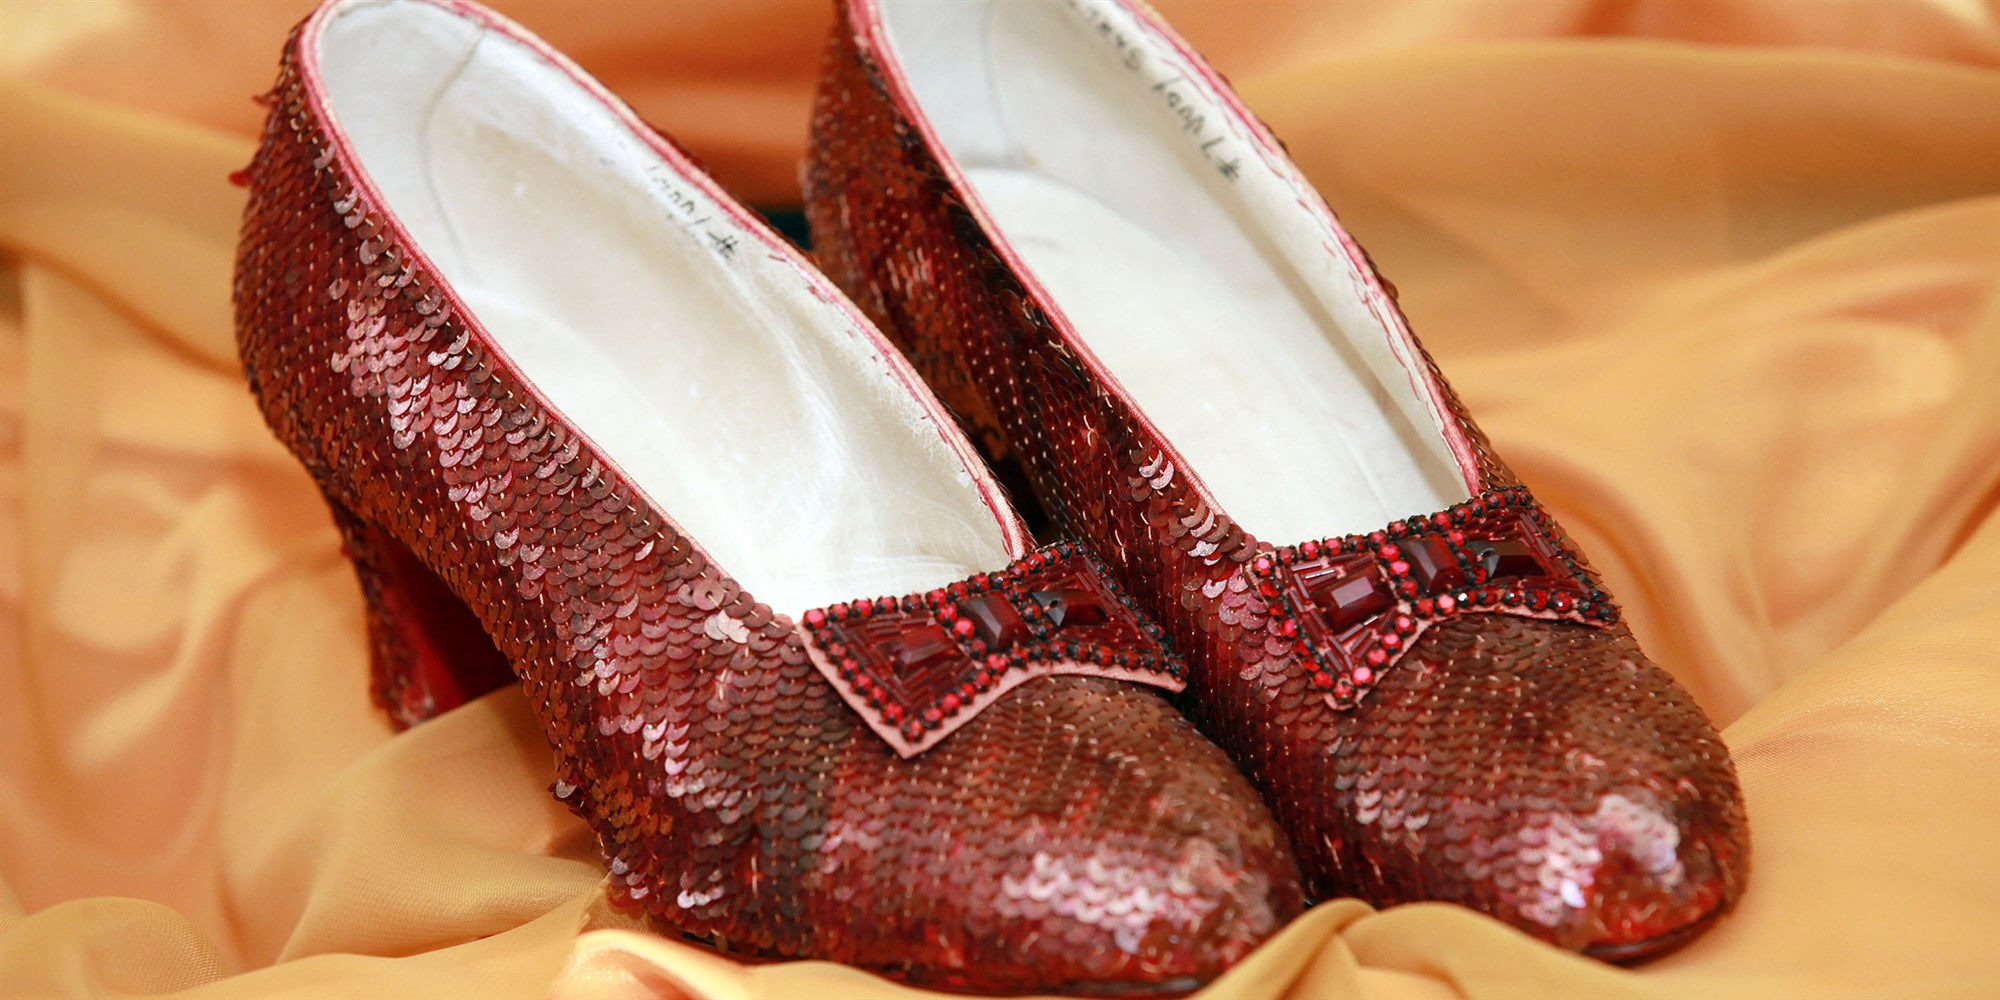 TCLChinese Theatre Hollywood,  Celebrates Recovery of Stolen Ruby Slippers